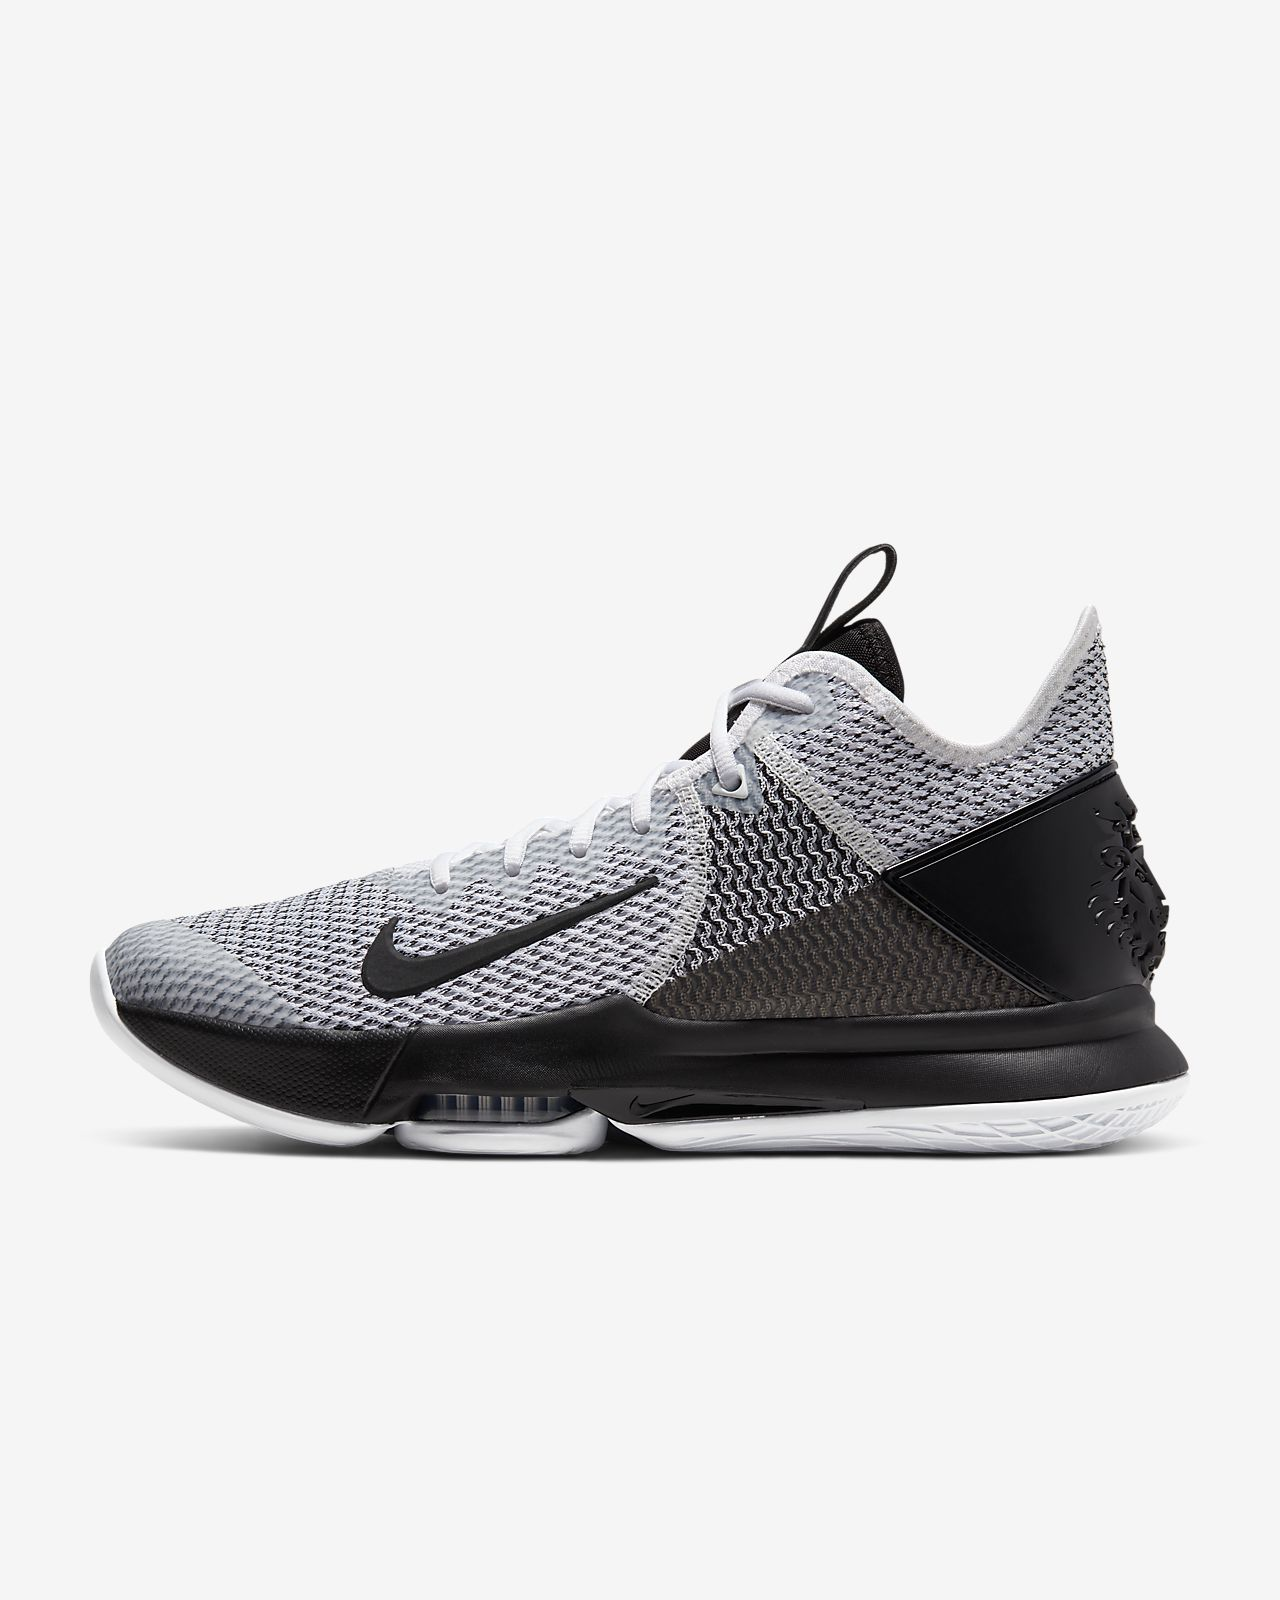 Chaussure de basketball LeBron Witness 4